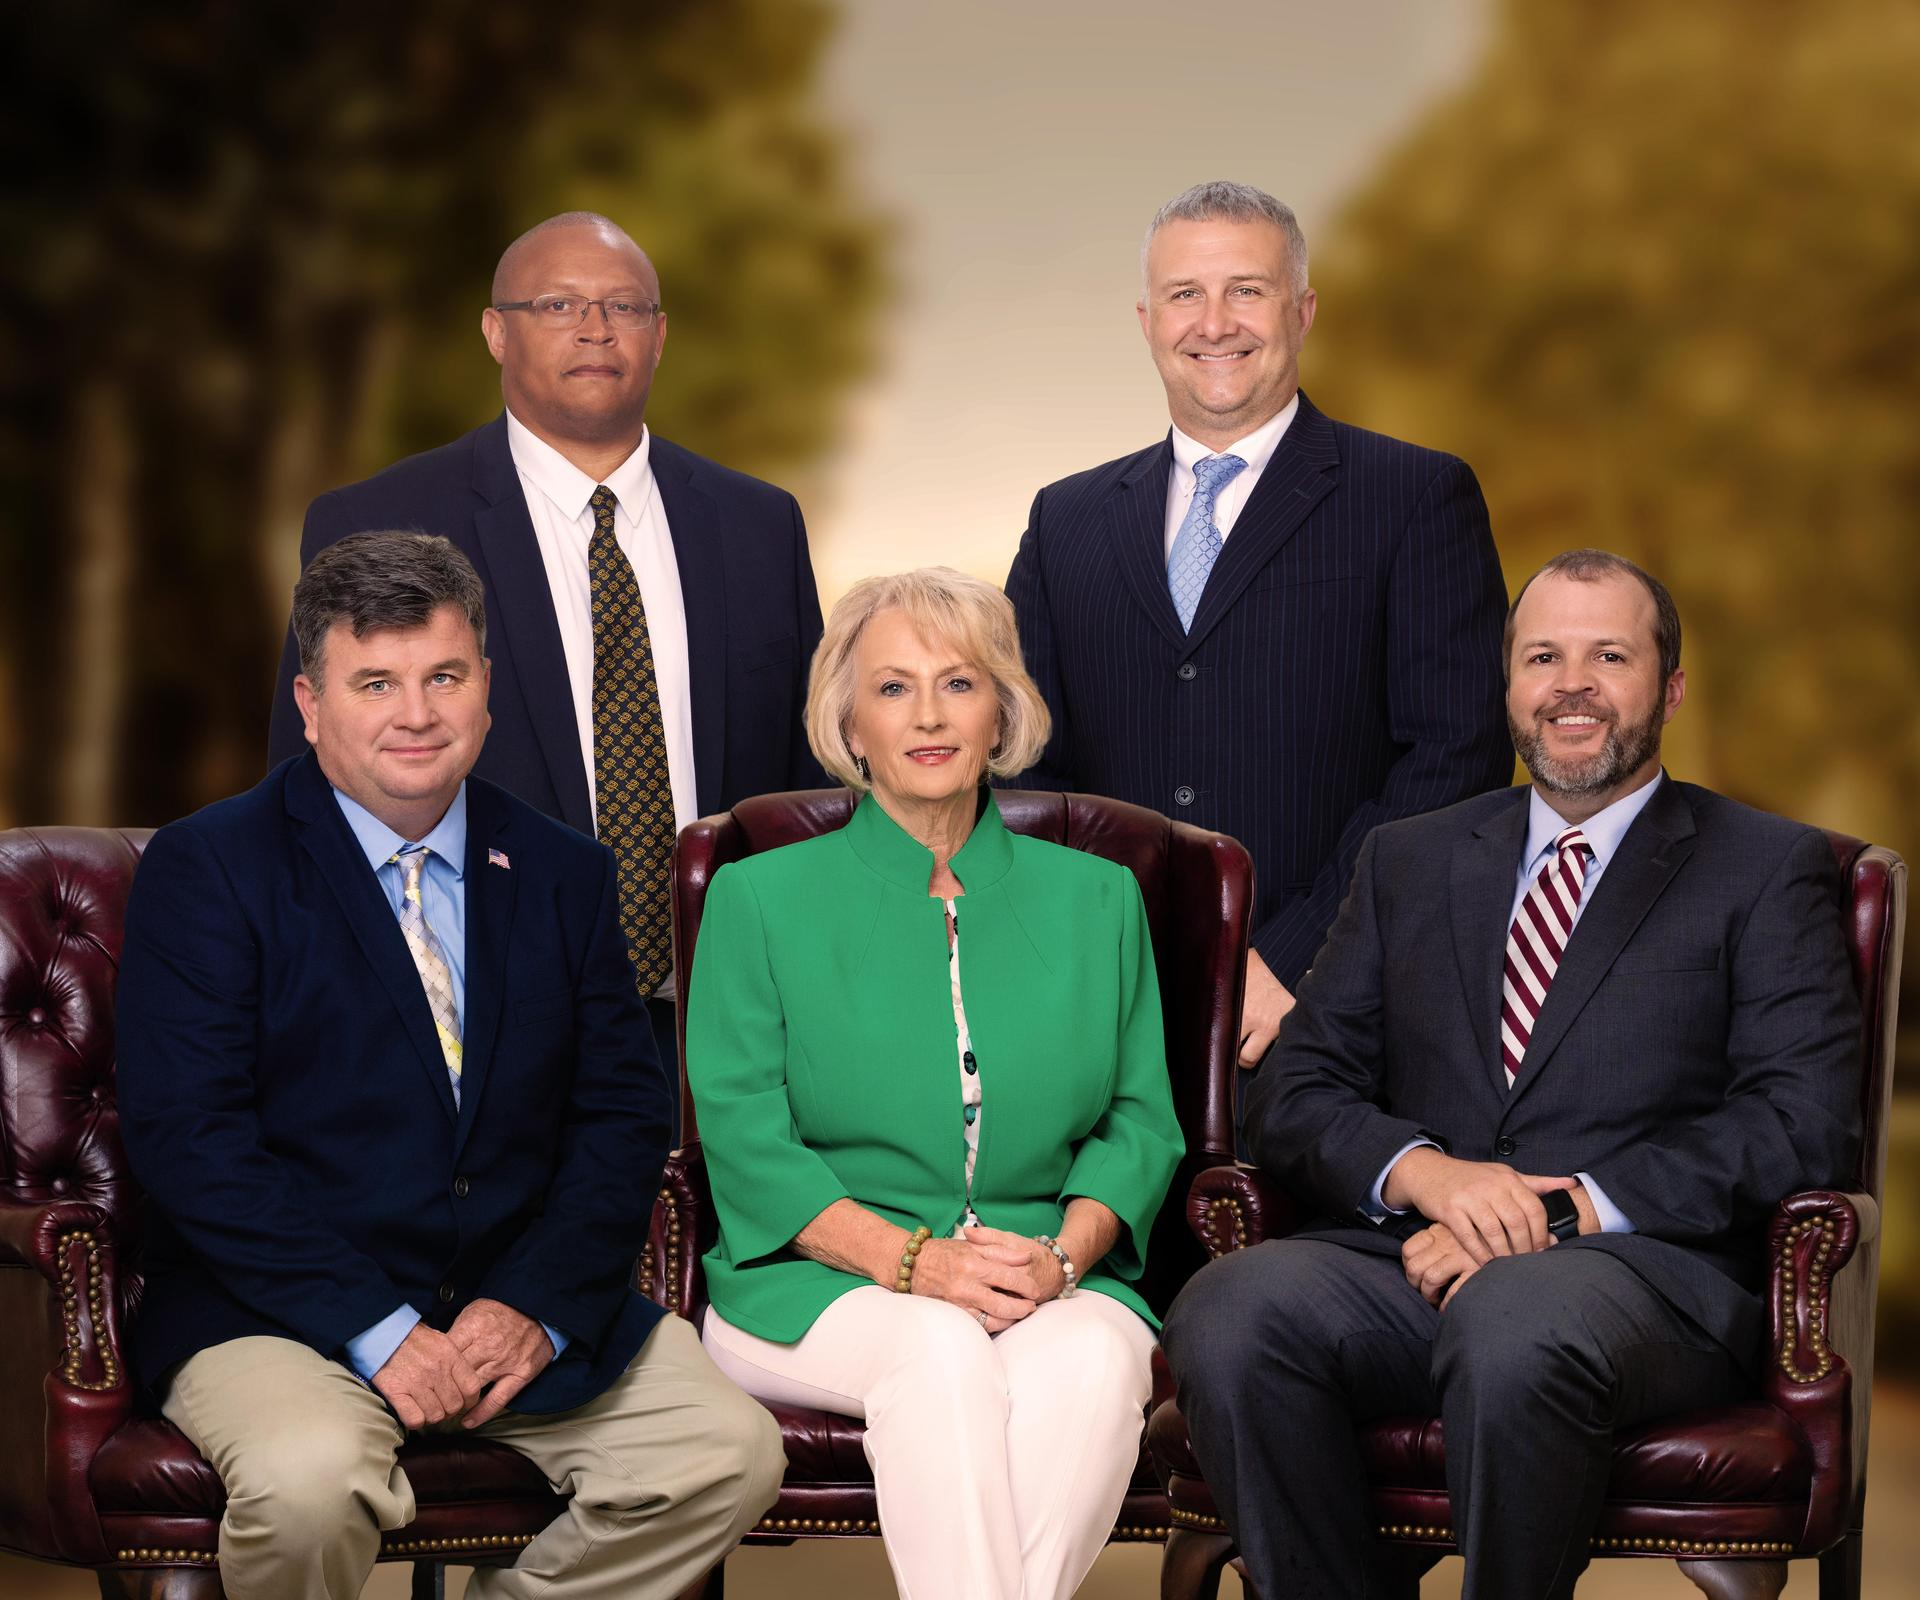 LCSD Board of Education